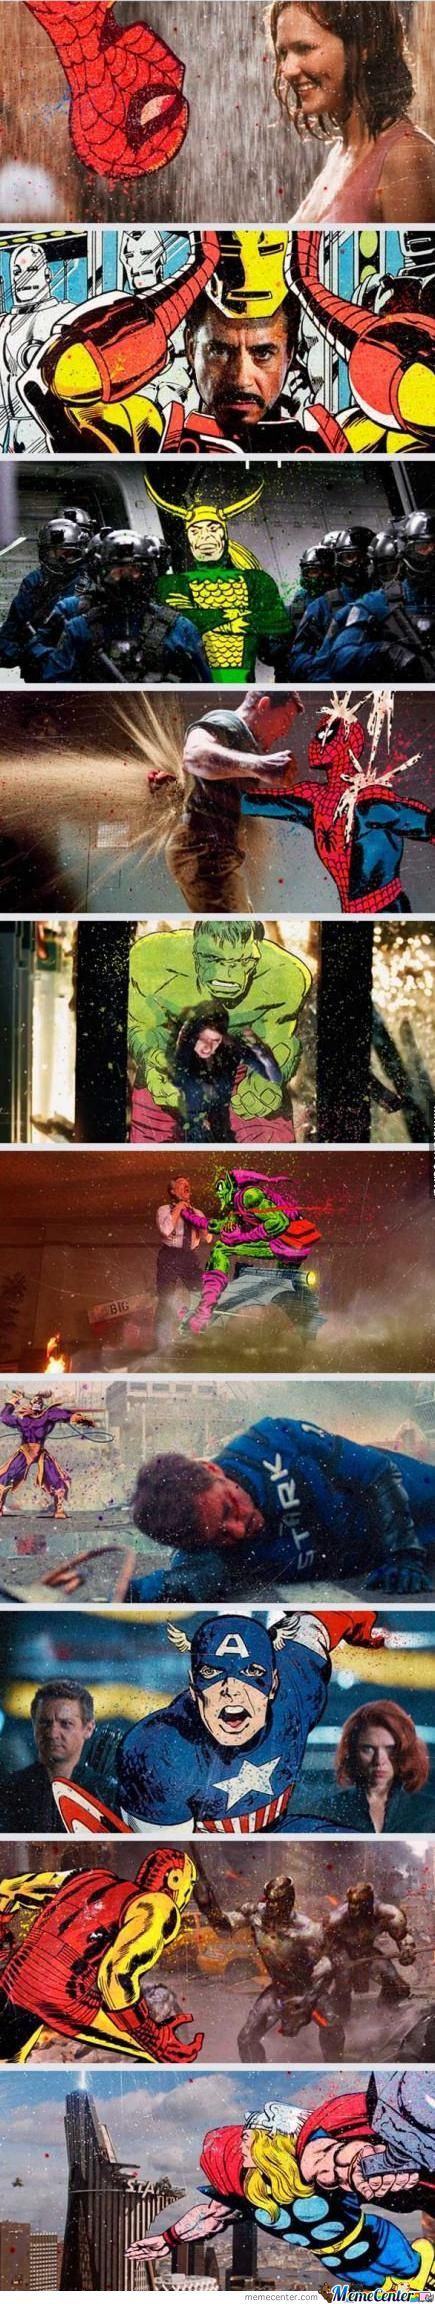 The Movie And The Comic